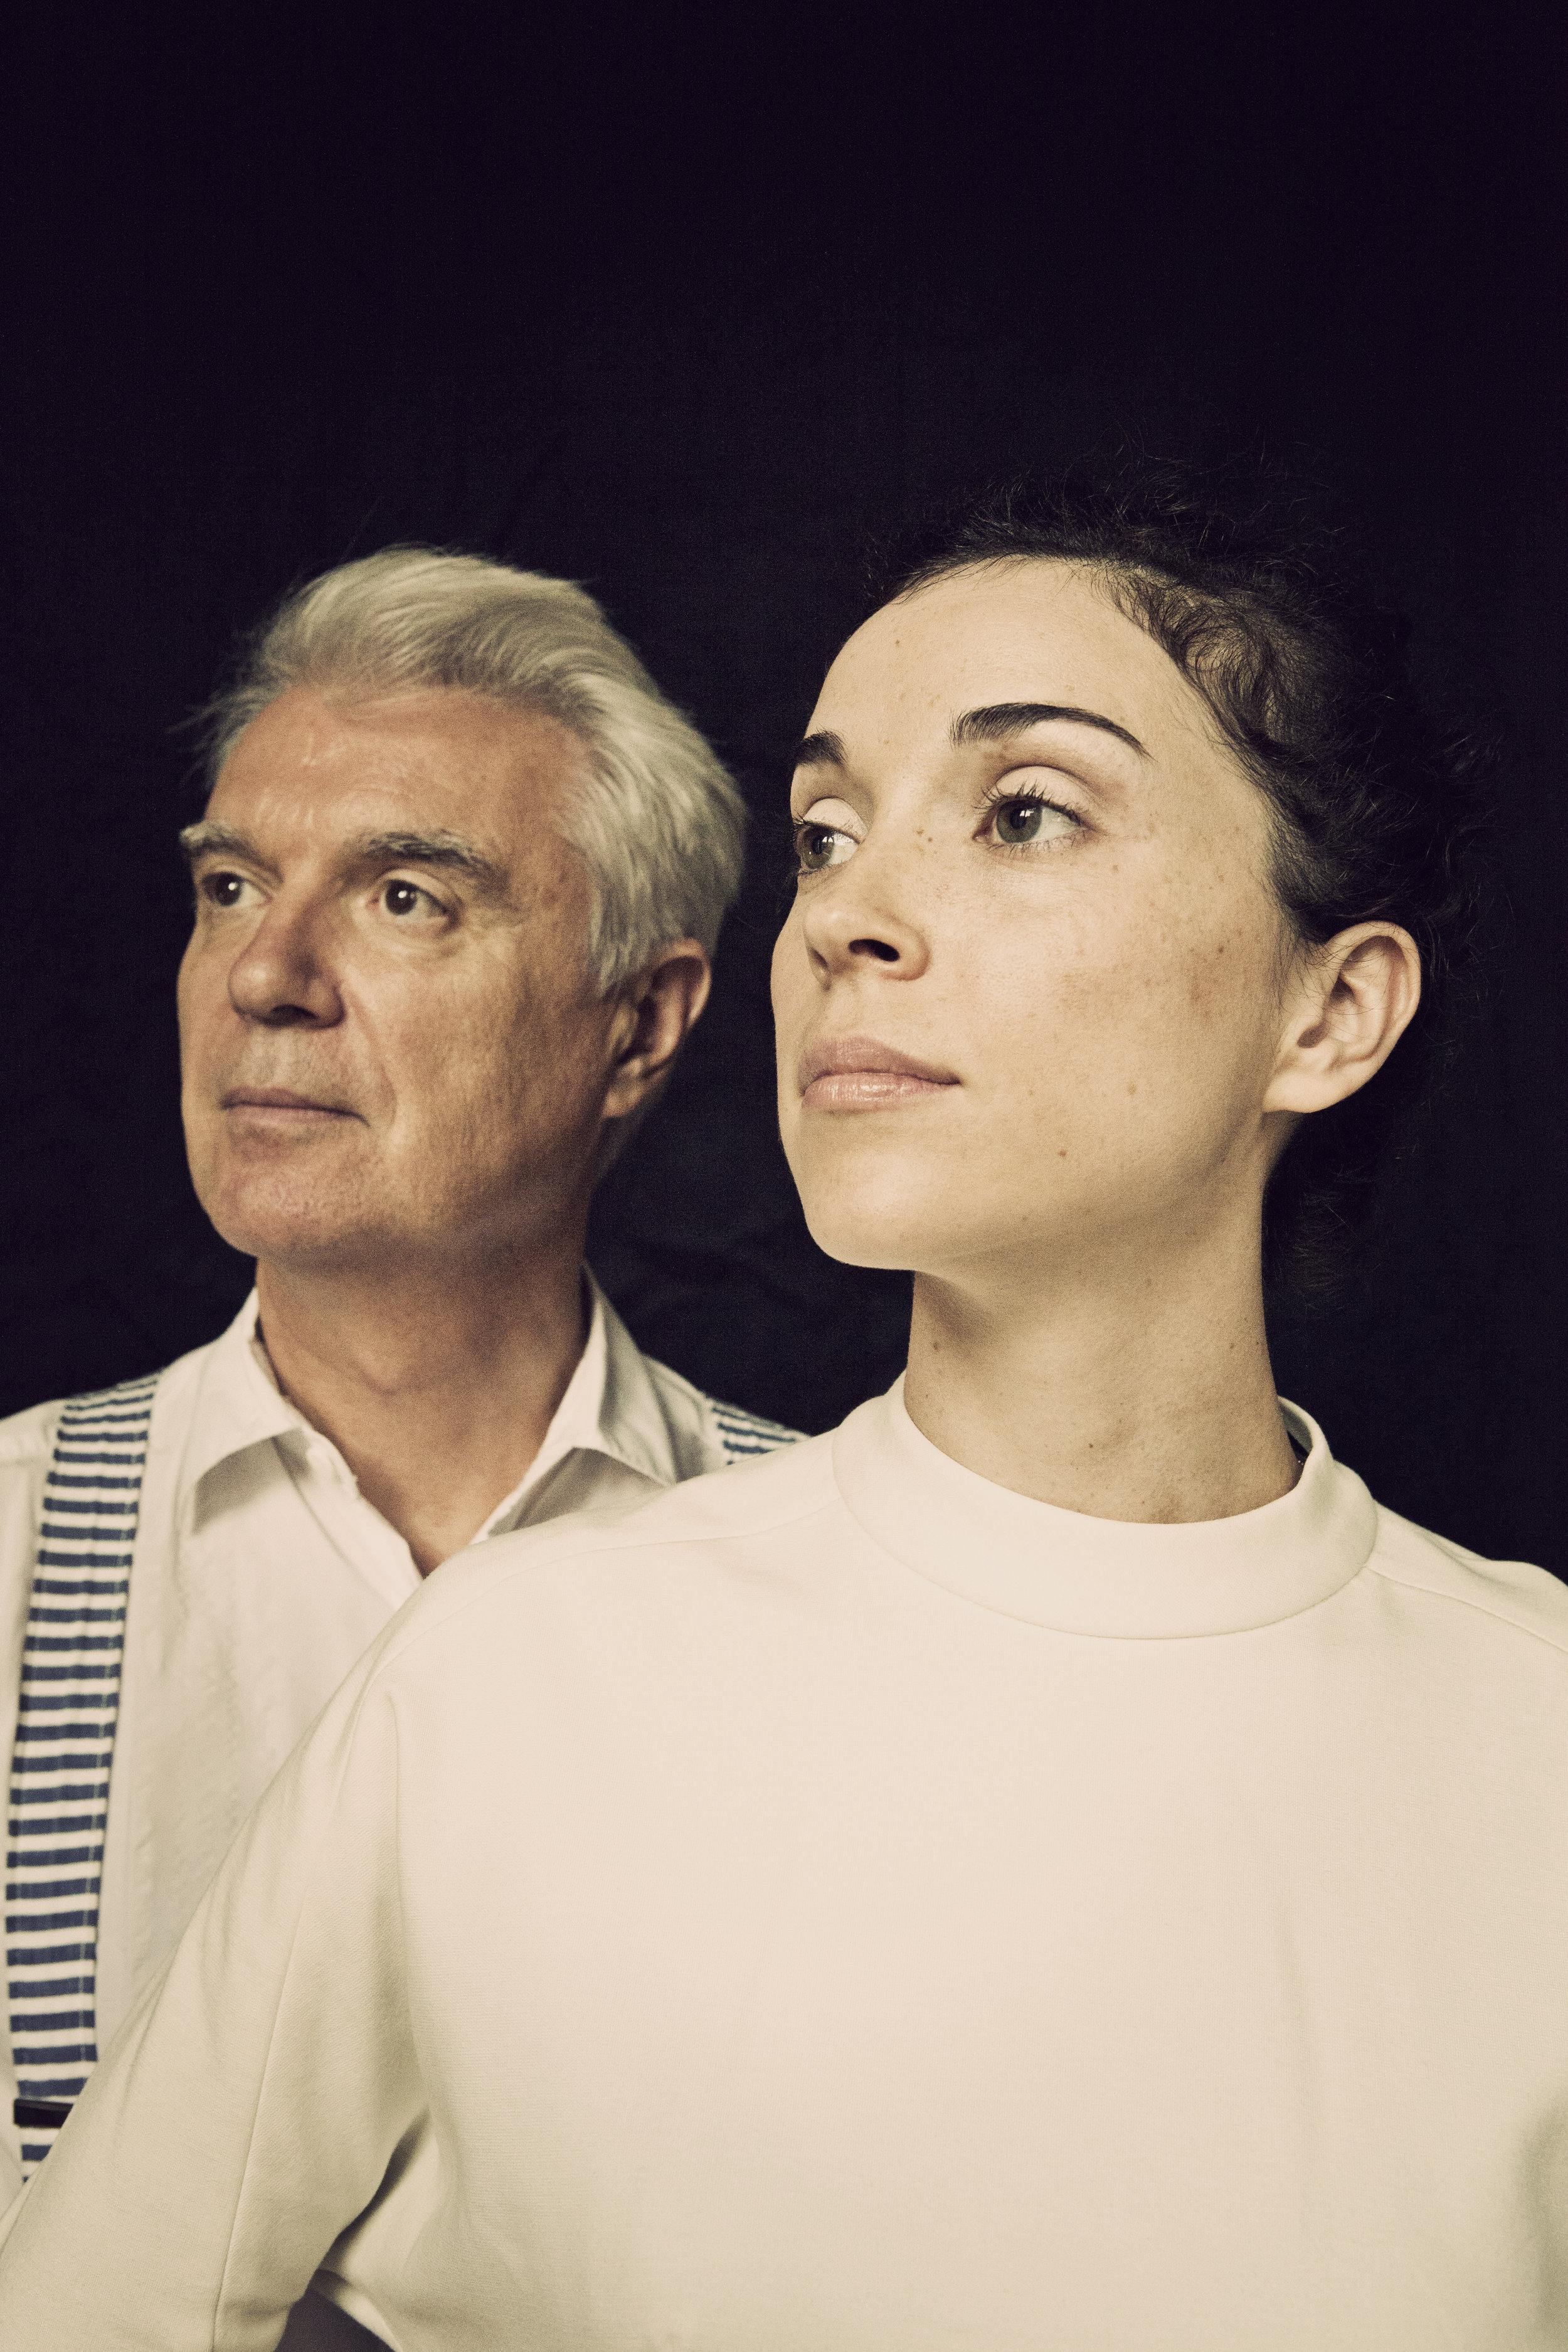 David Byrne and St. Vincent, New York City, 2012